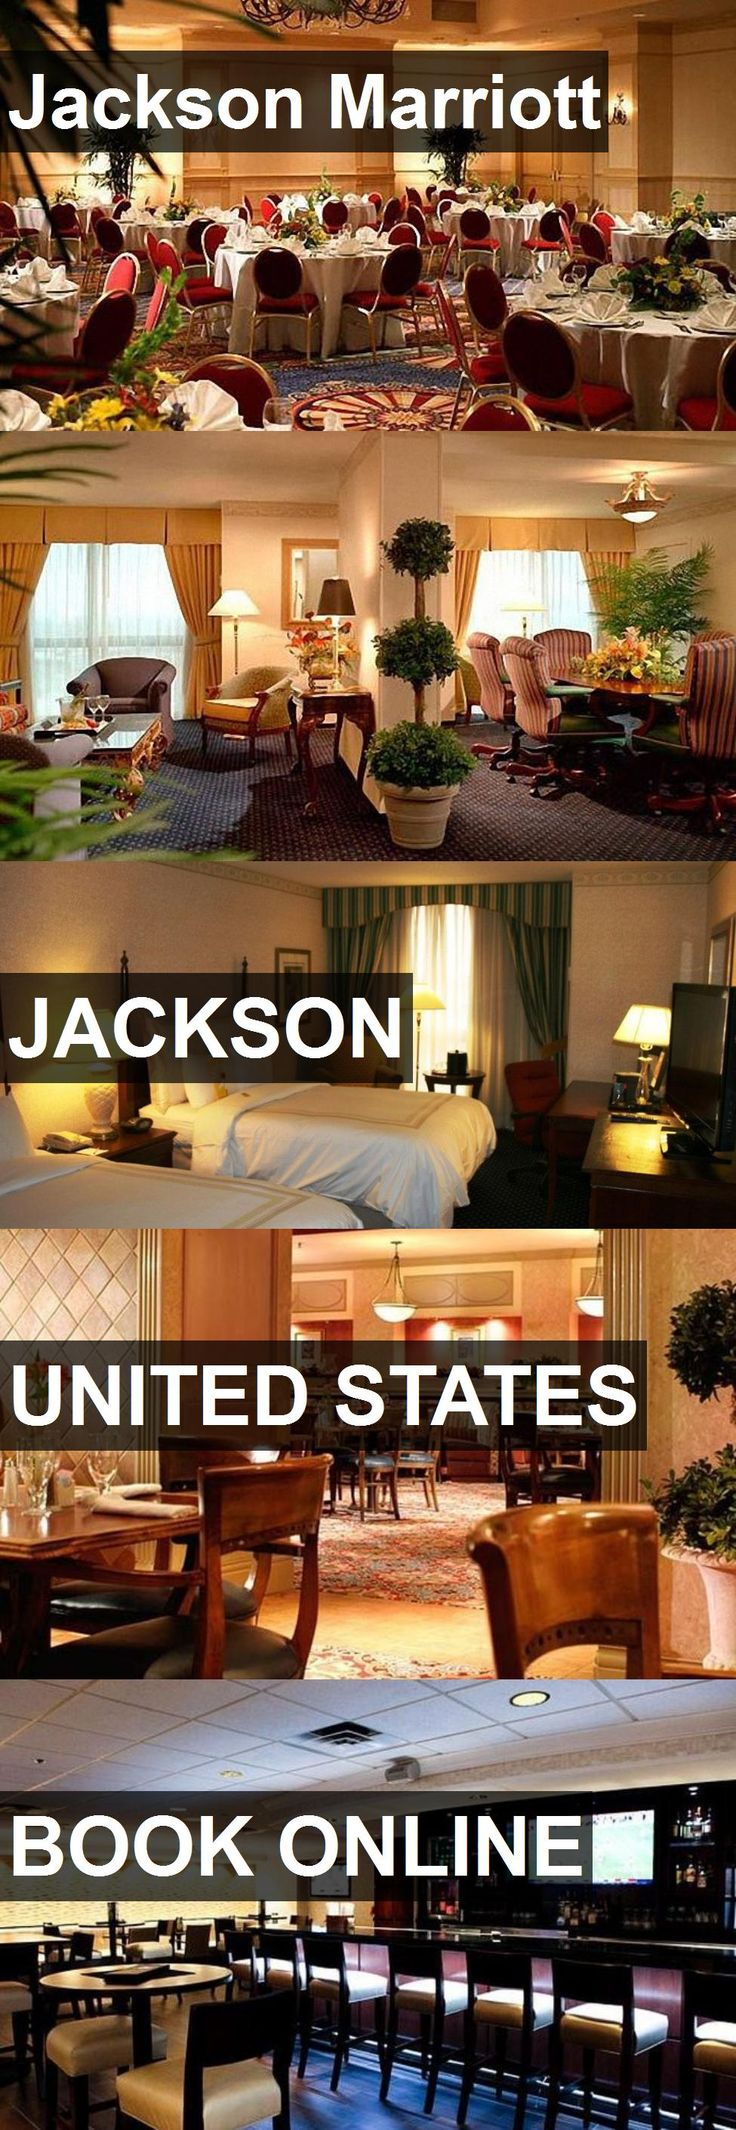 Hotel Jackson Marriott In Jackson, United States. For More Information,  Photos, Reviews